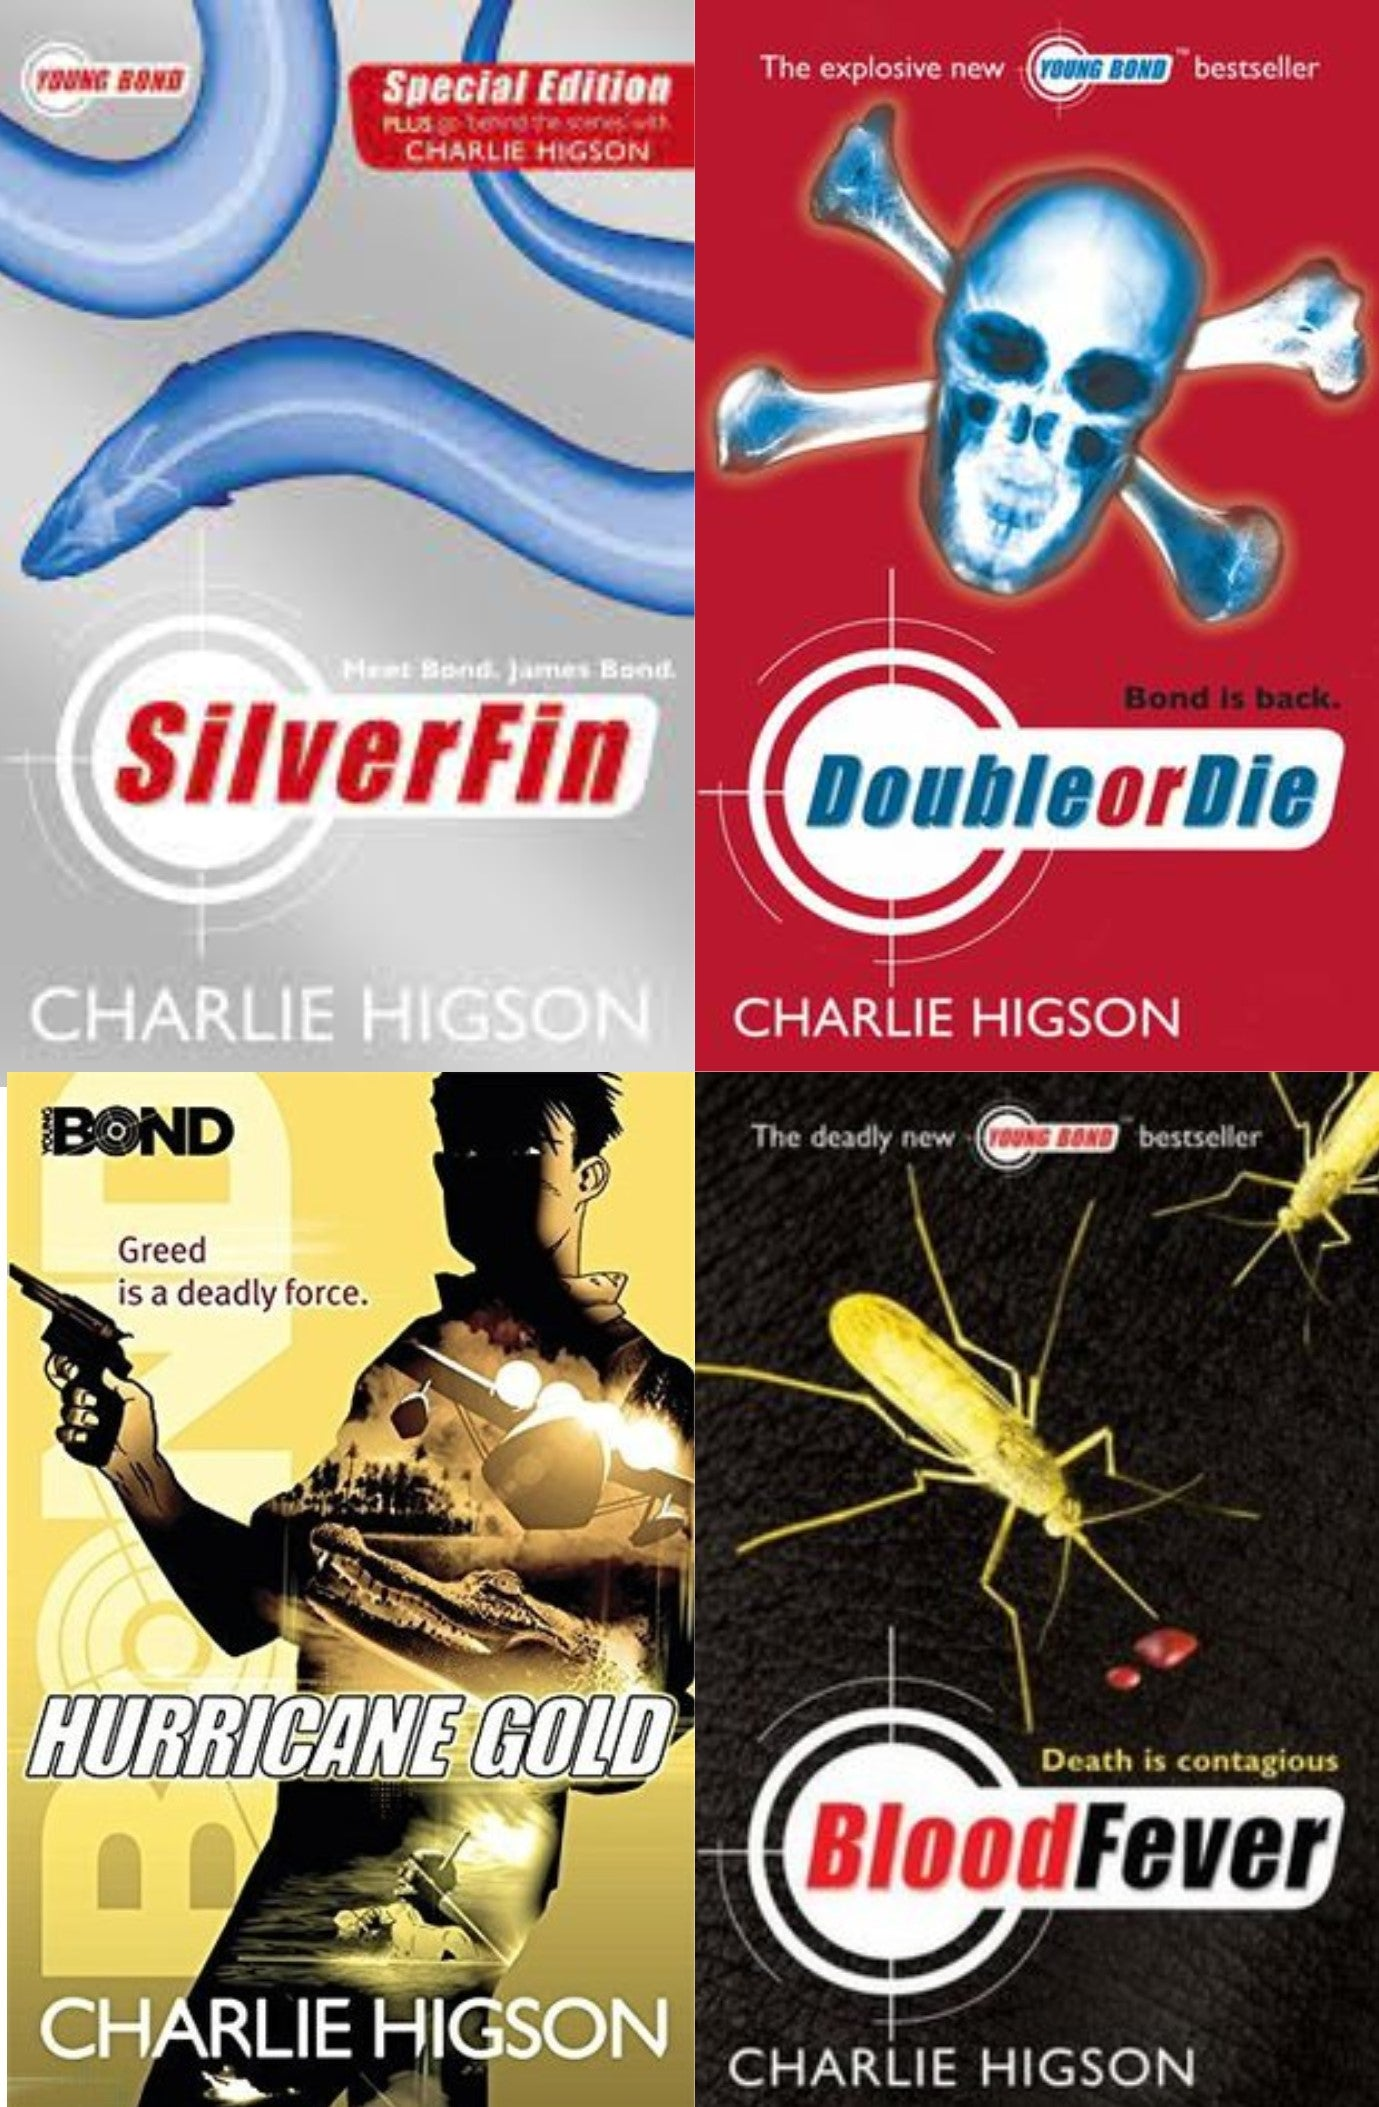 Young Bond Series Collection Charlie Higson 4 Books Set ( SilverFin, Blood Fever, Hurricane Gold, Double or Die)